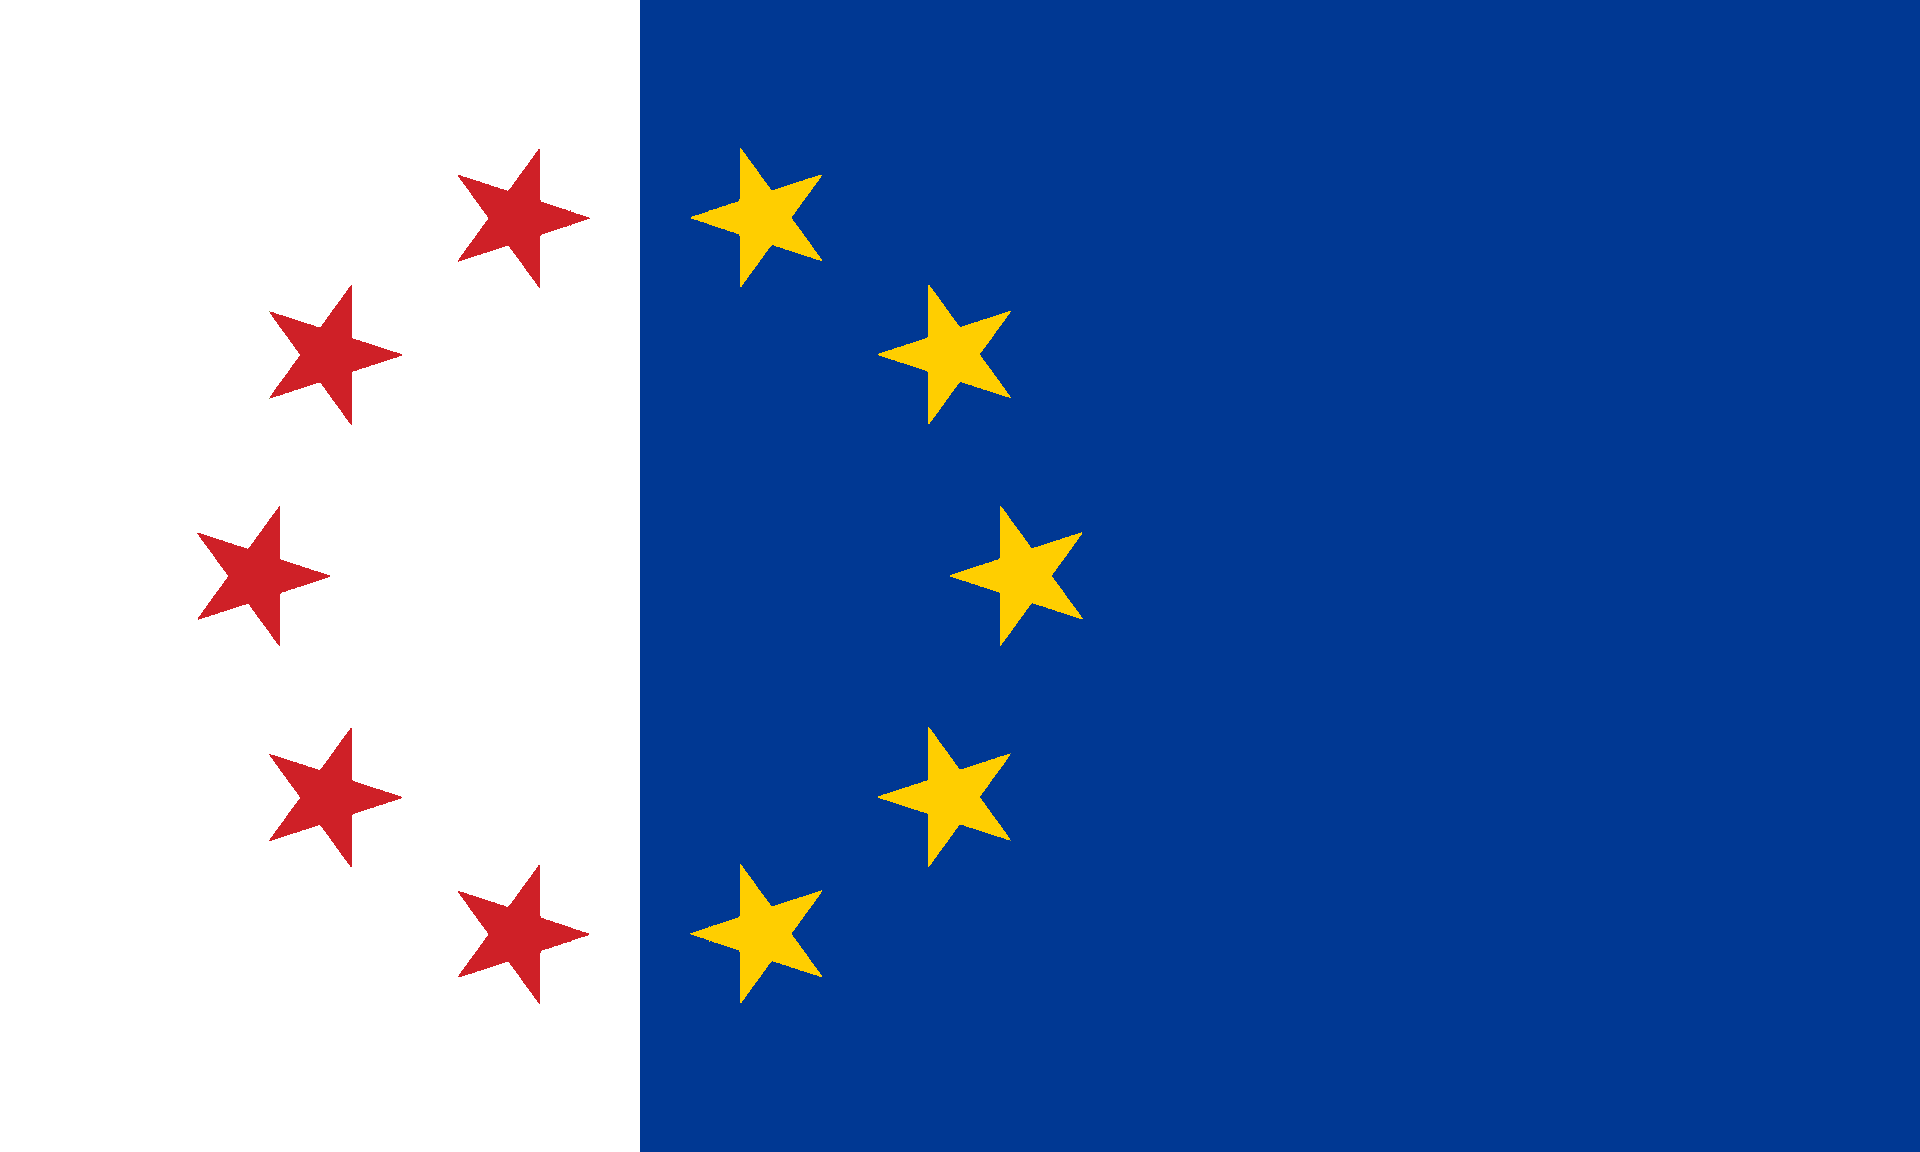 Wallpaper Of The Flag Of Cape Verde [Redesigned Version] | PaperPull